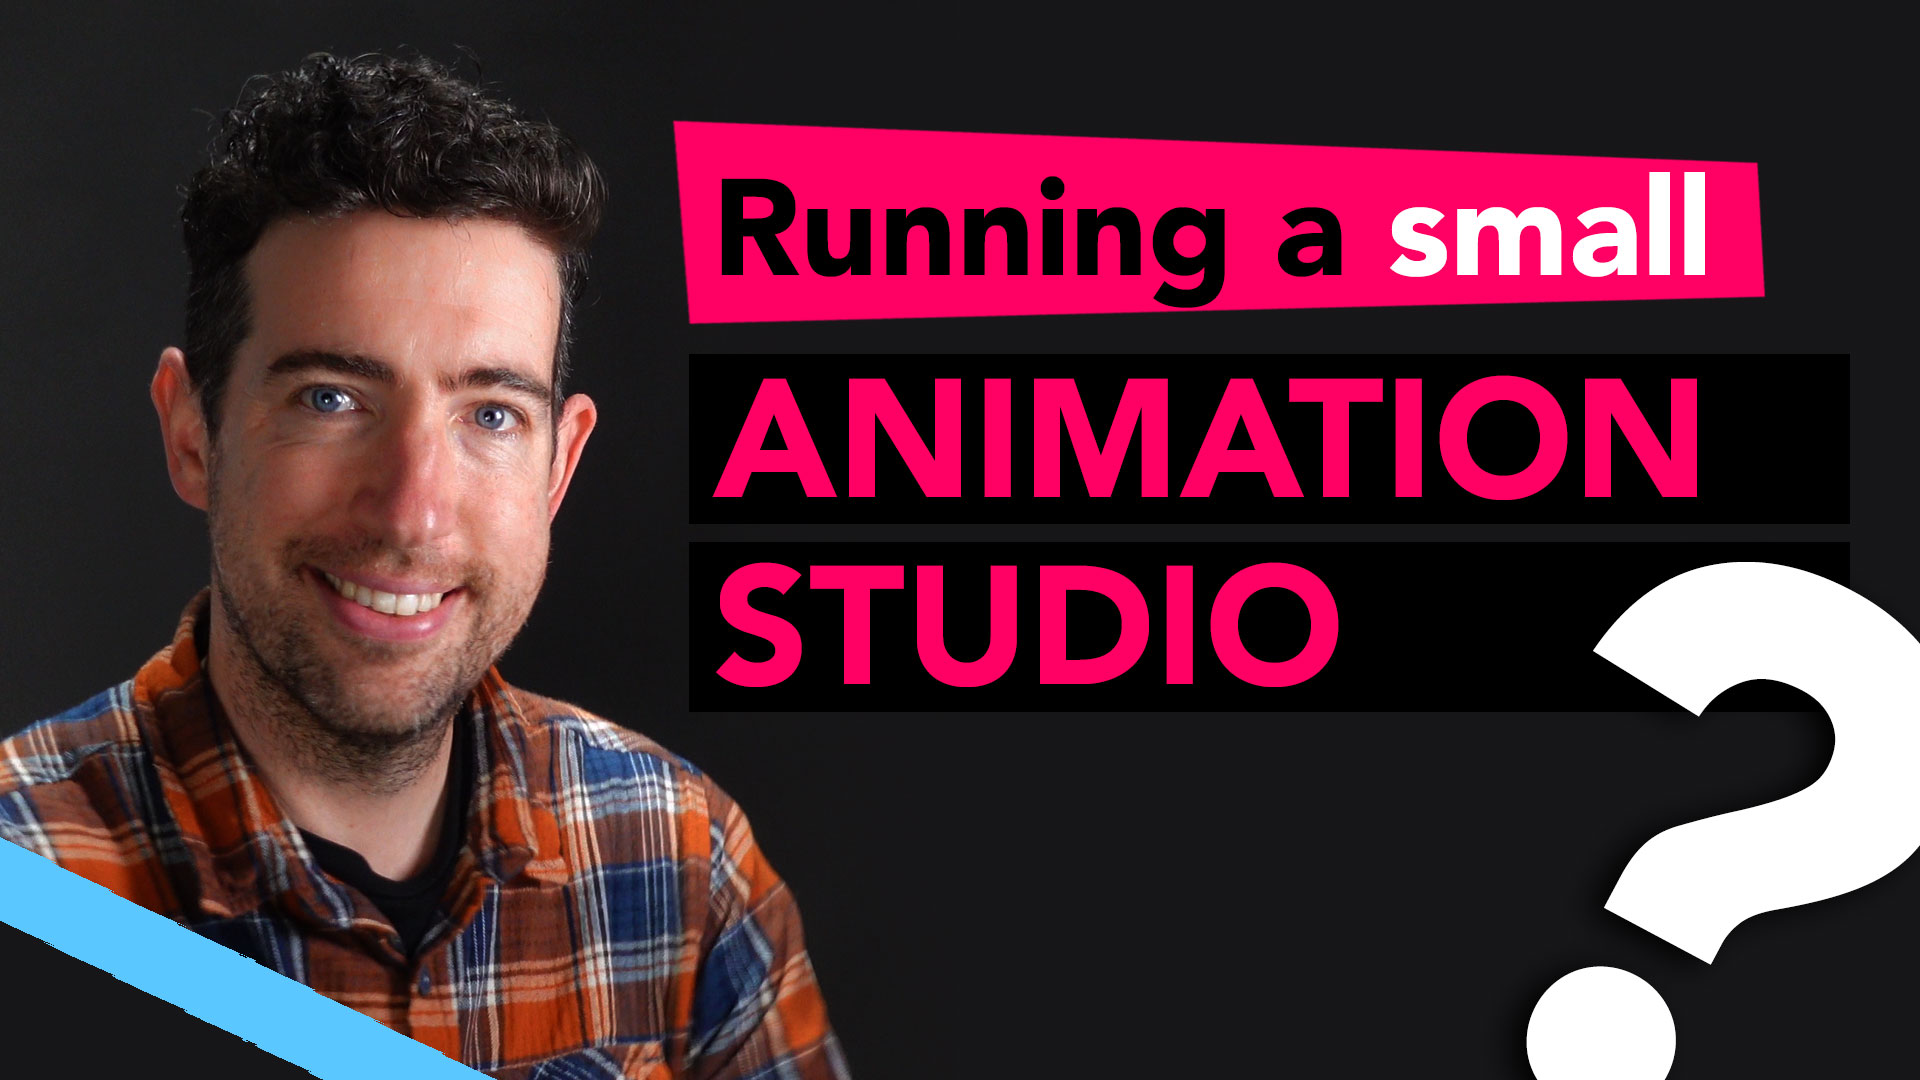 Start an animation studio in 2020